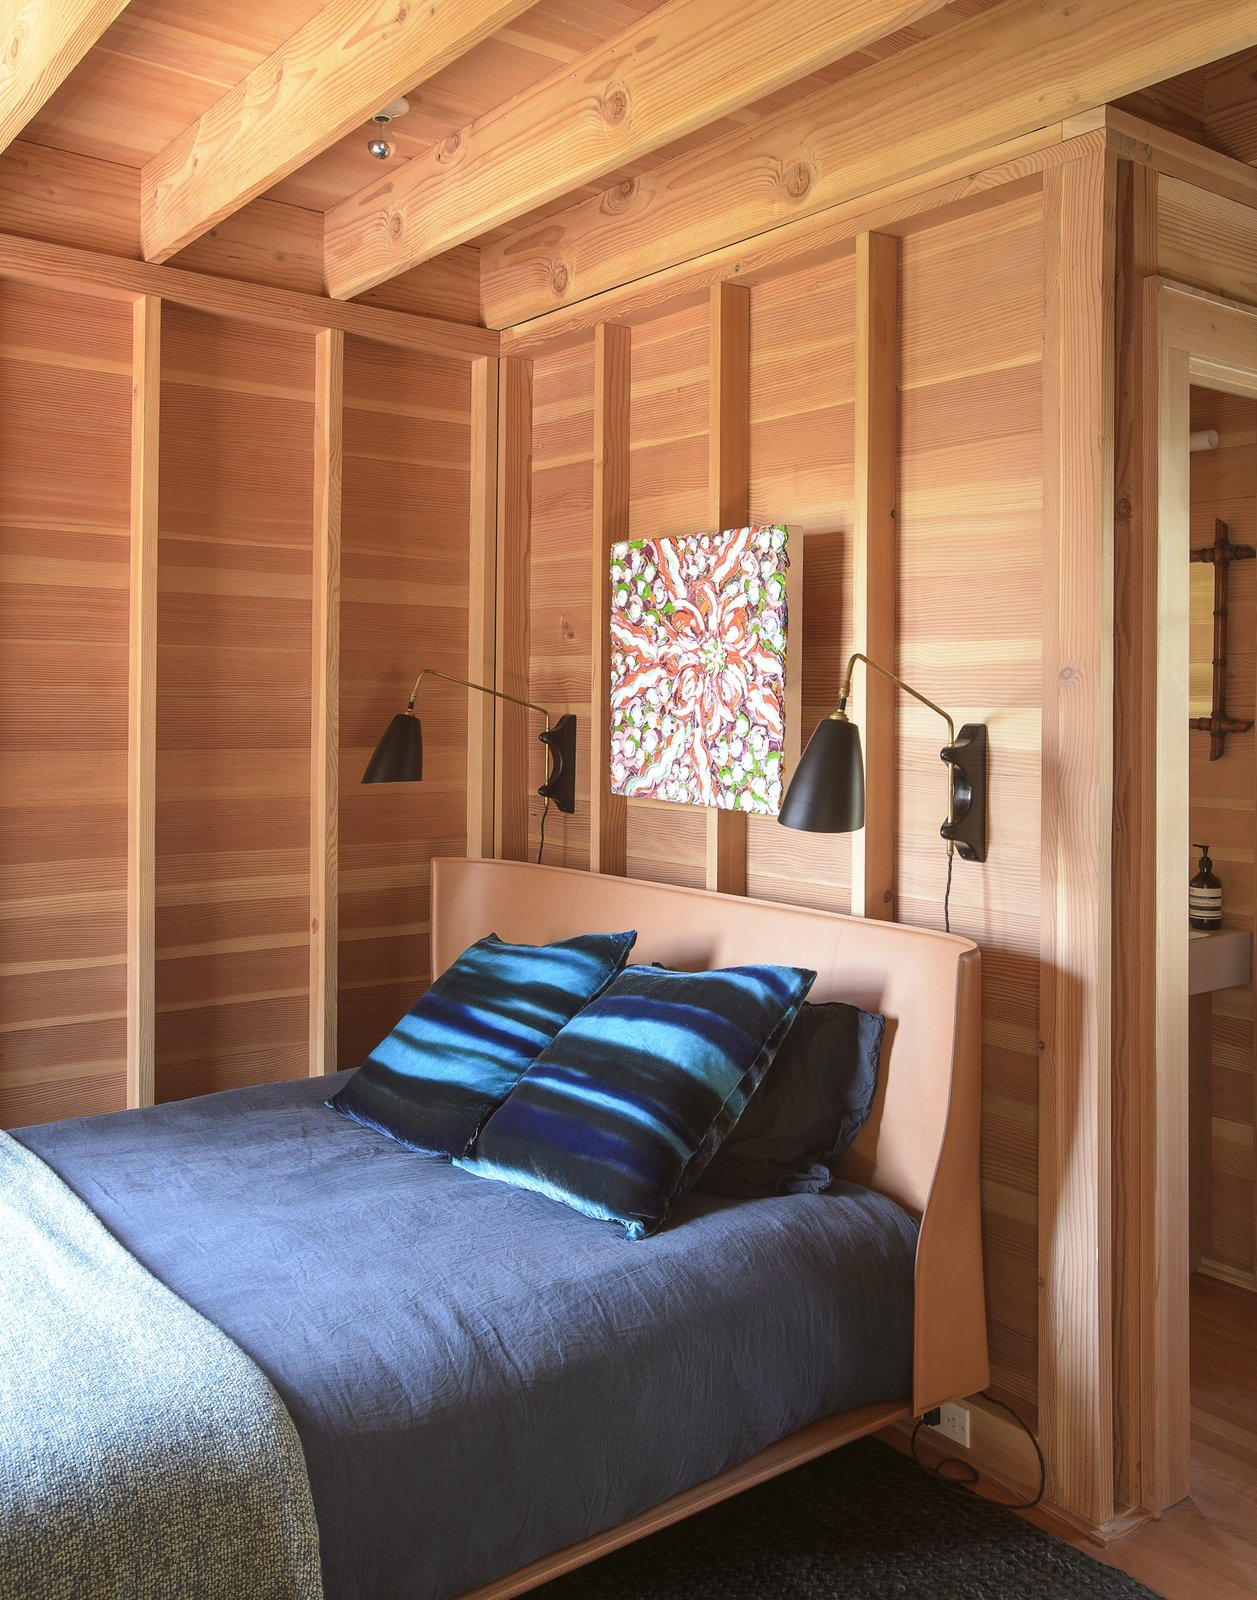 Bedroom, Rug Floor, Bed, Wall Lighting, and Medium Hardwood Floor  Best Photos from This Eclectic Beach Bungalow on Fire Island Was Saved After Sandy